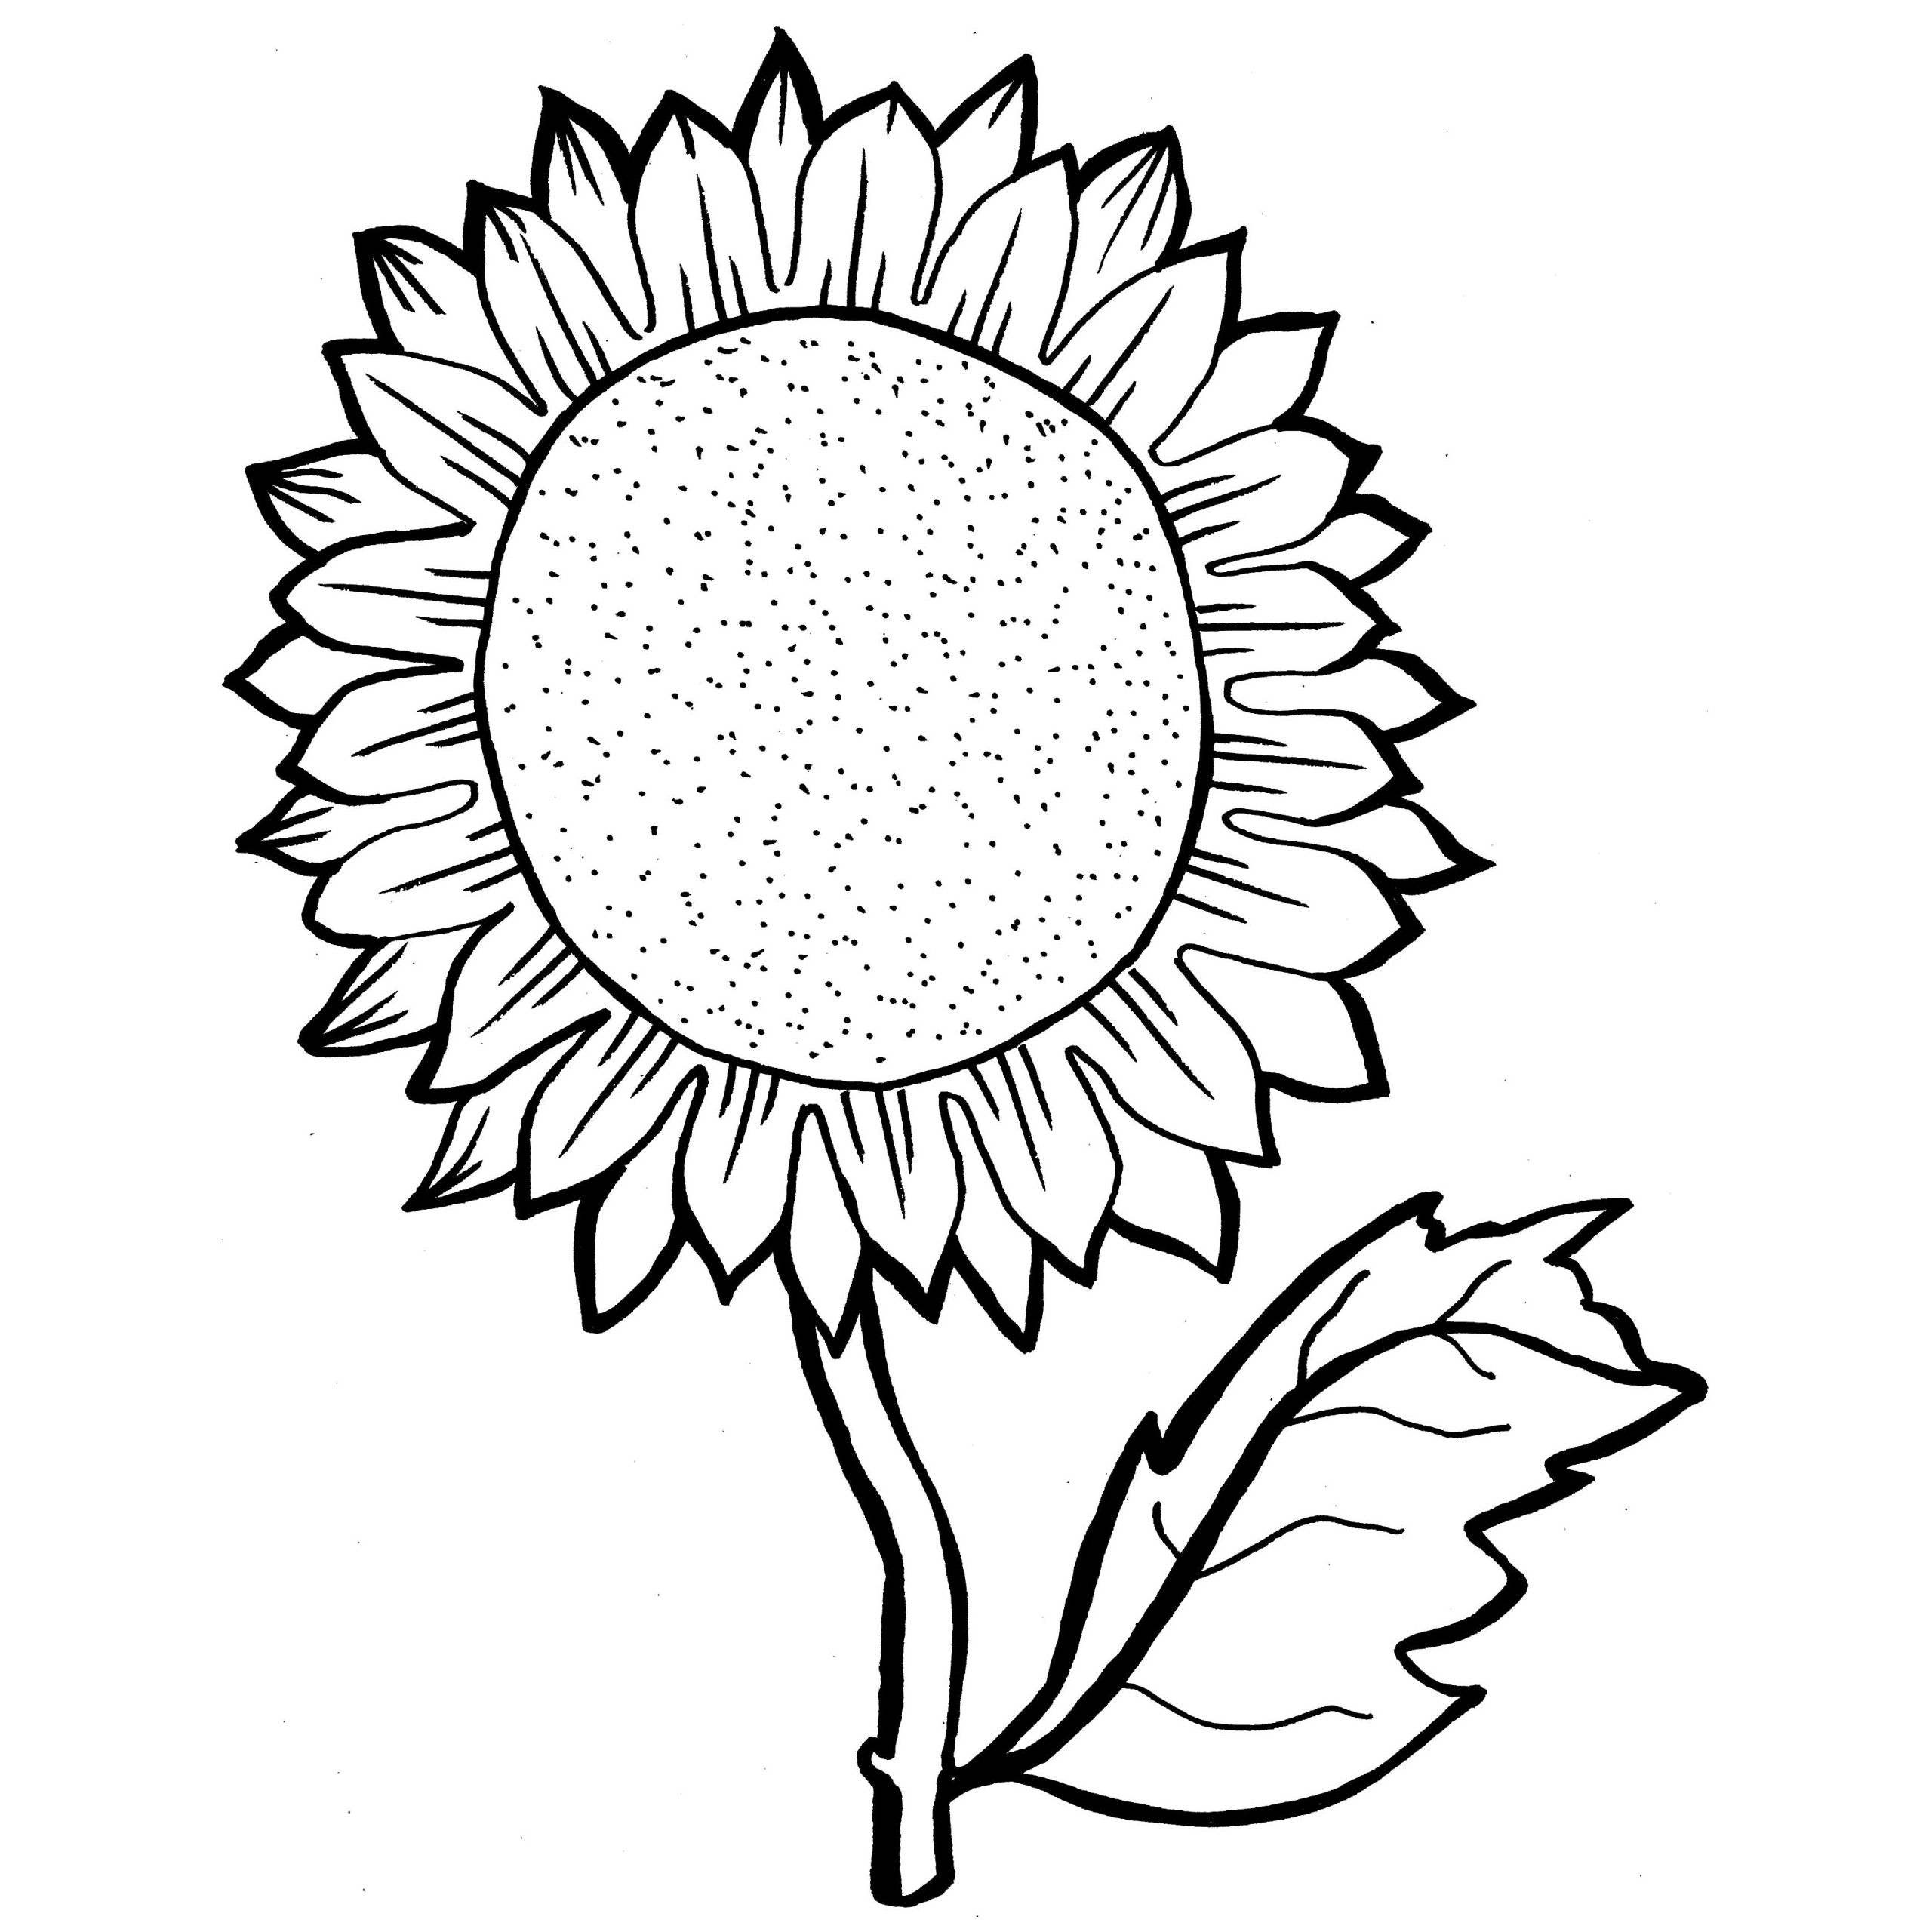 2560x2560 Sunflowers Coloring Pages Acpra